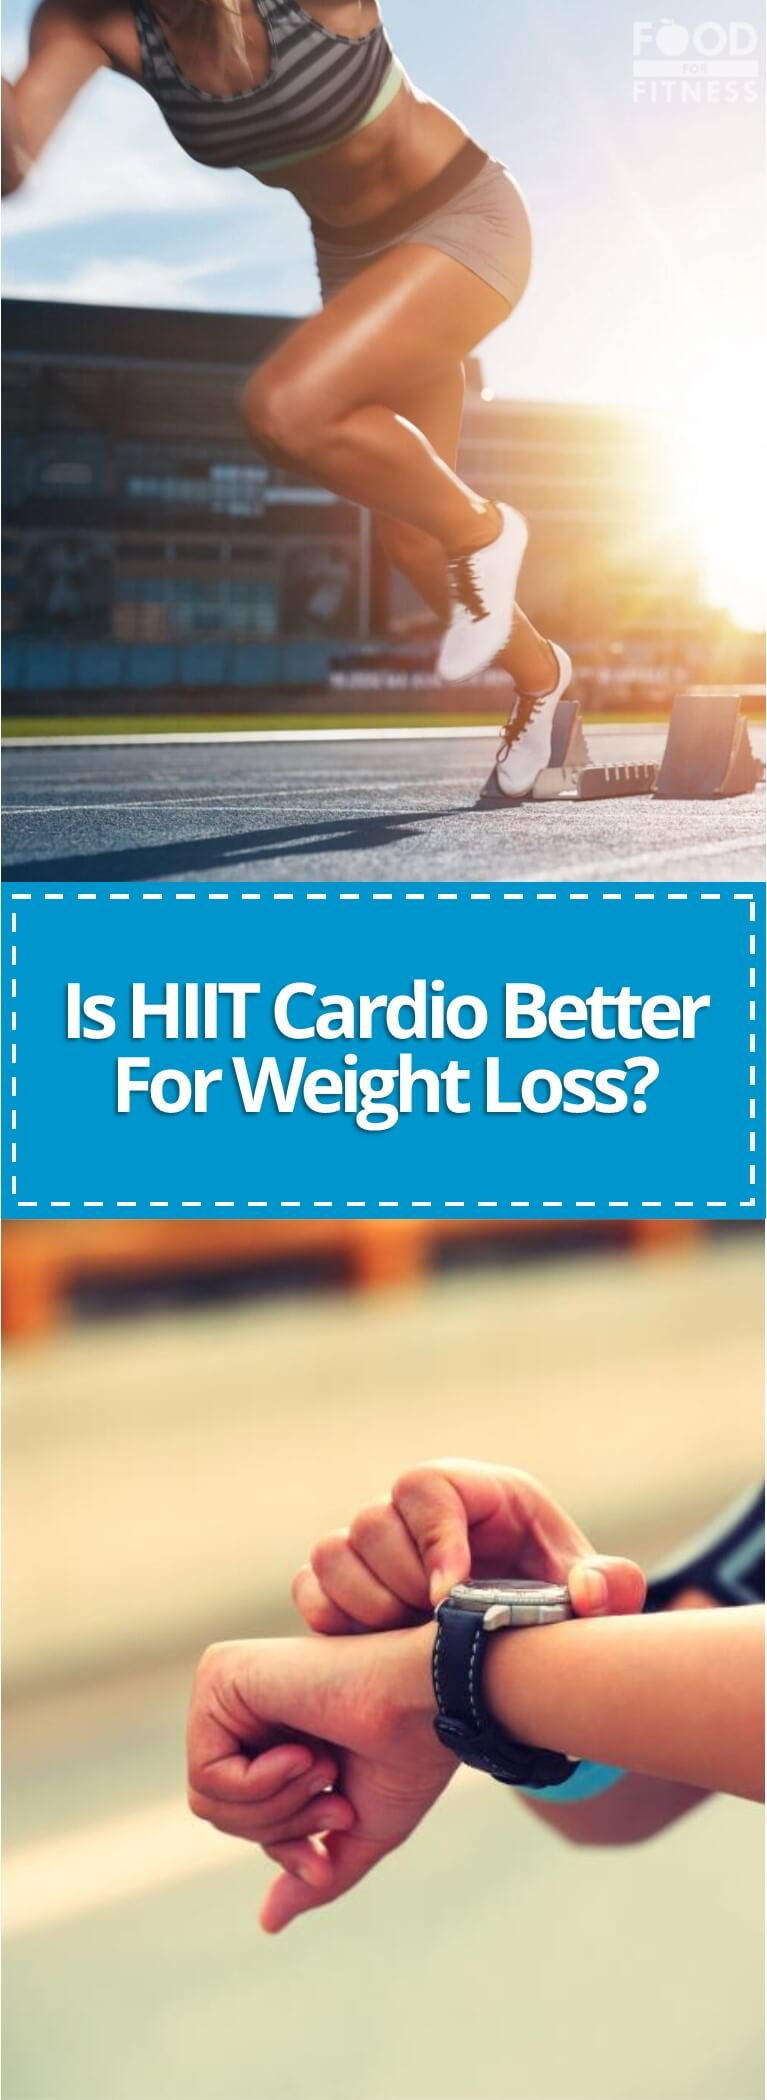 Is HIIT Cardio Better For Weight Loss?